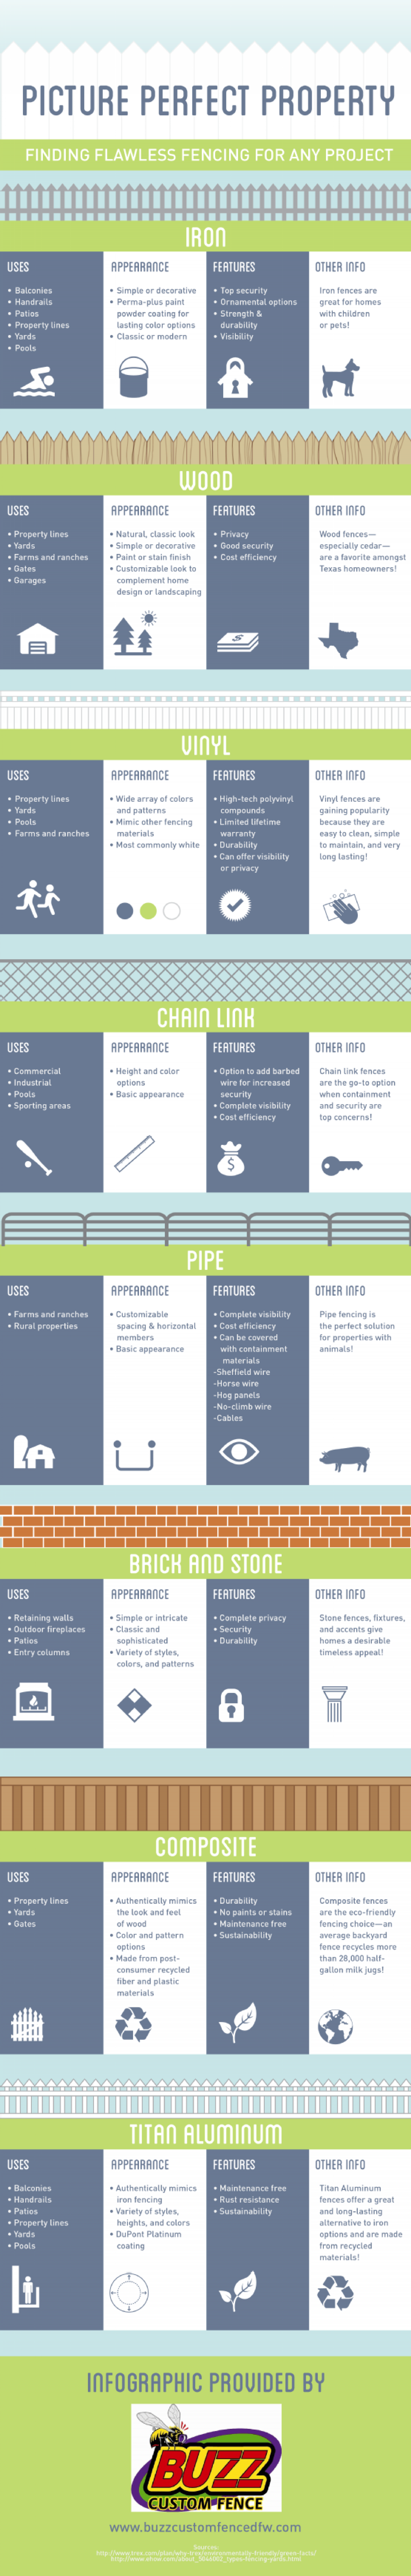 Picture Perfect Property: Finding Flawless Fencing for Any Project Infographic